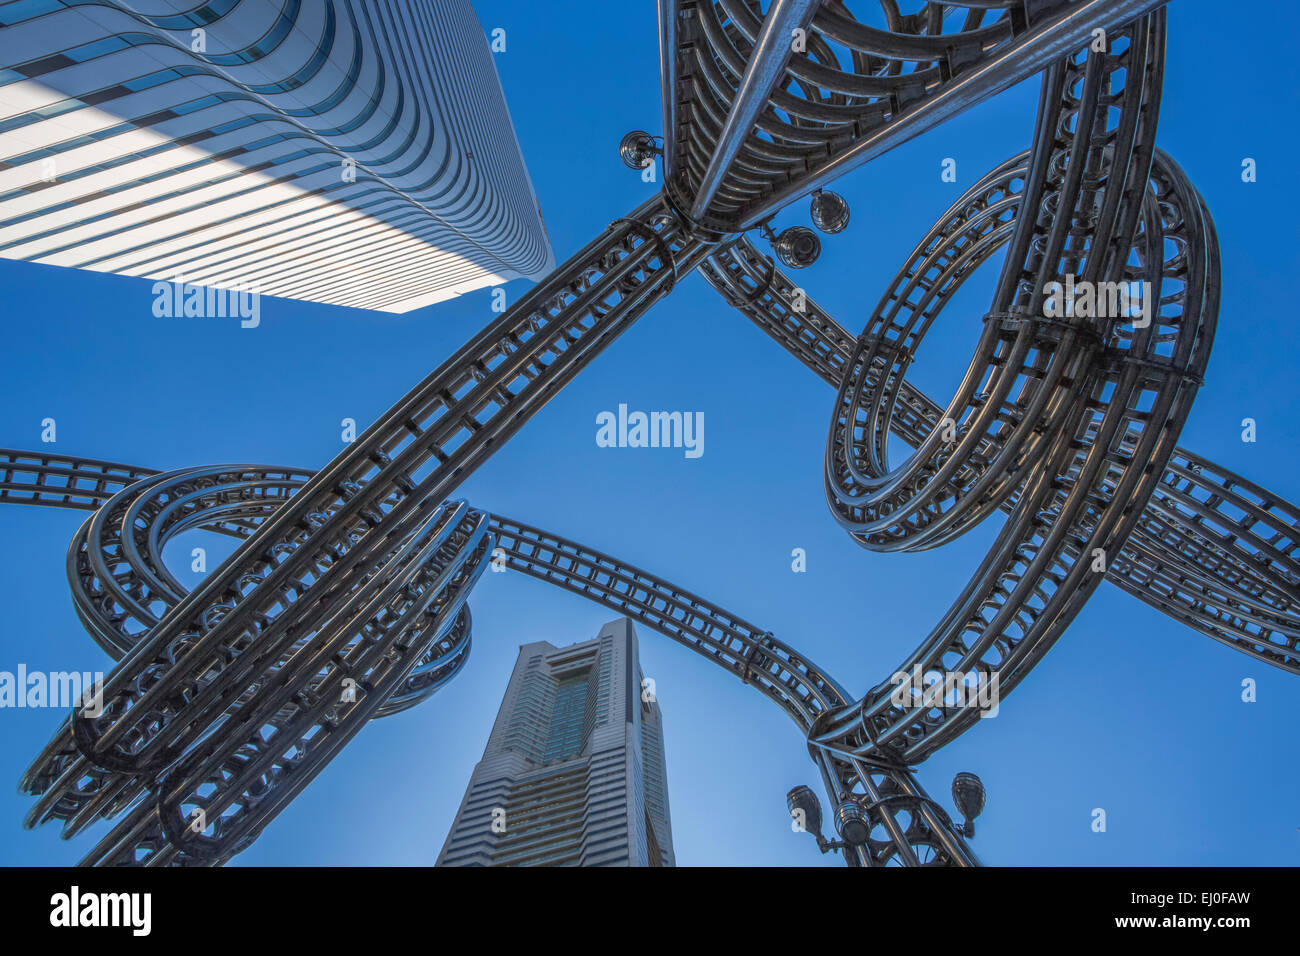 City, Japan, Asia, Landmark, Yokohama, architecture, art, artistic, colourful, complex, design, futuristic, Art, - Stock Image